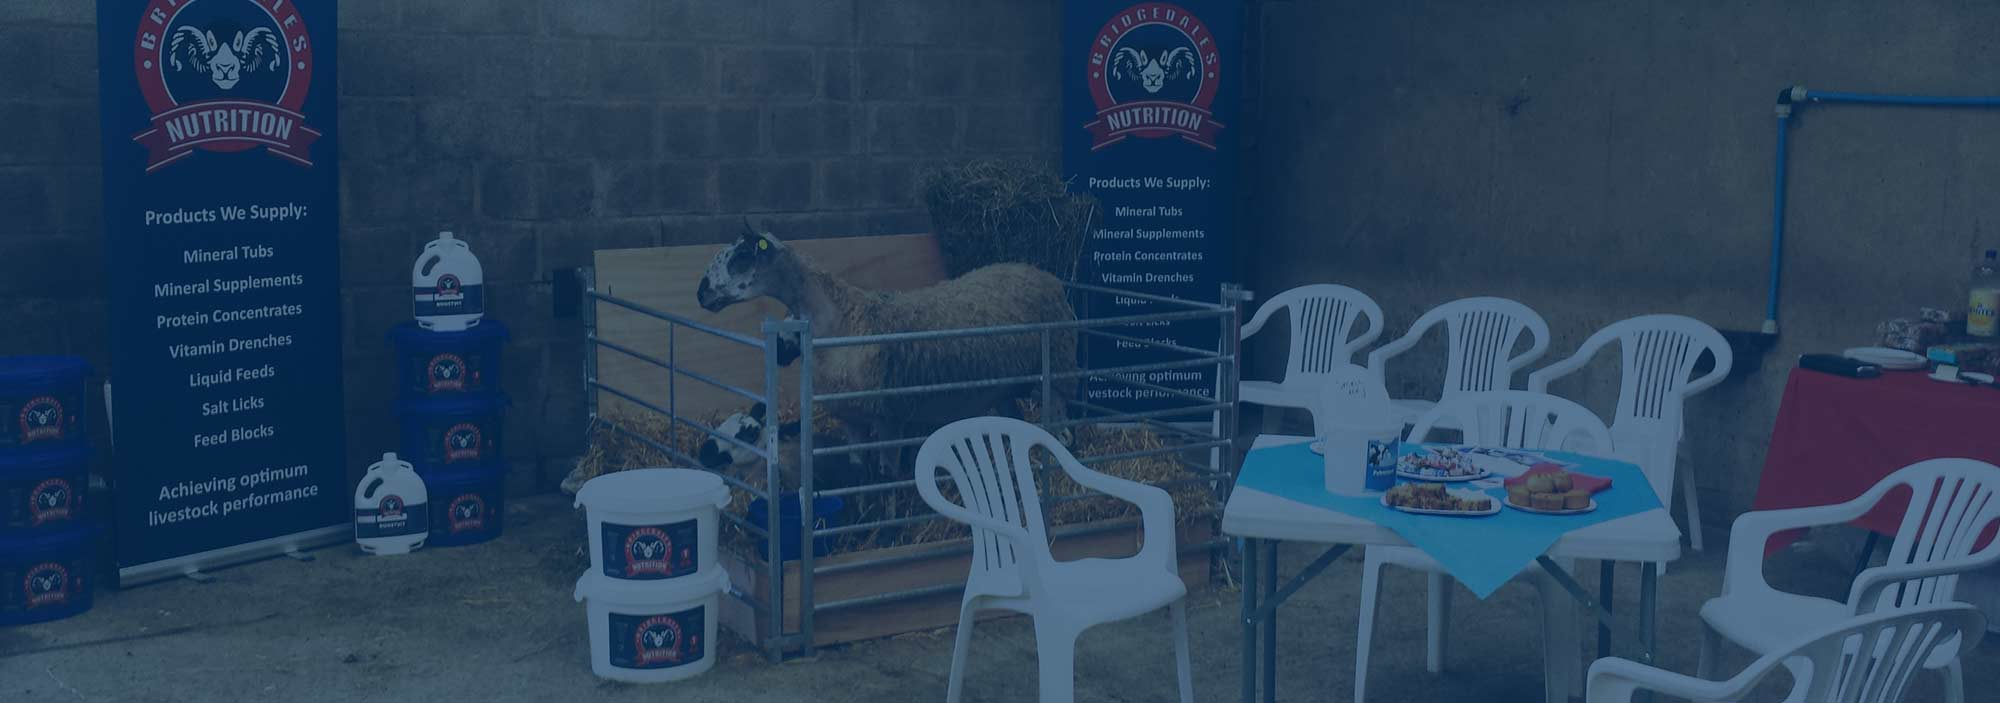 Bridgedales Nutrition Ltd at the Northern Sheep event